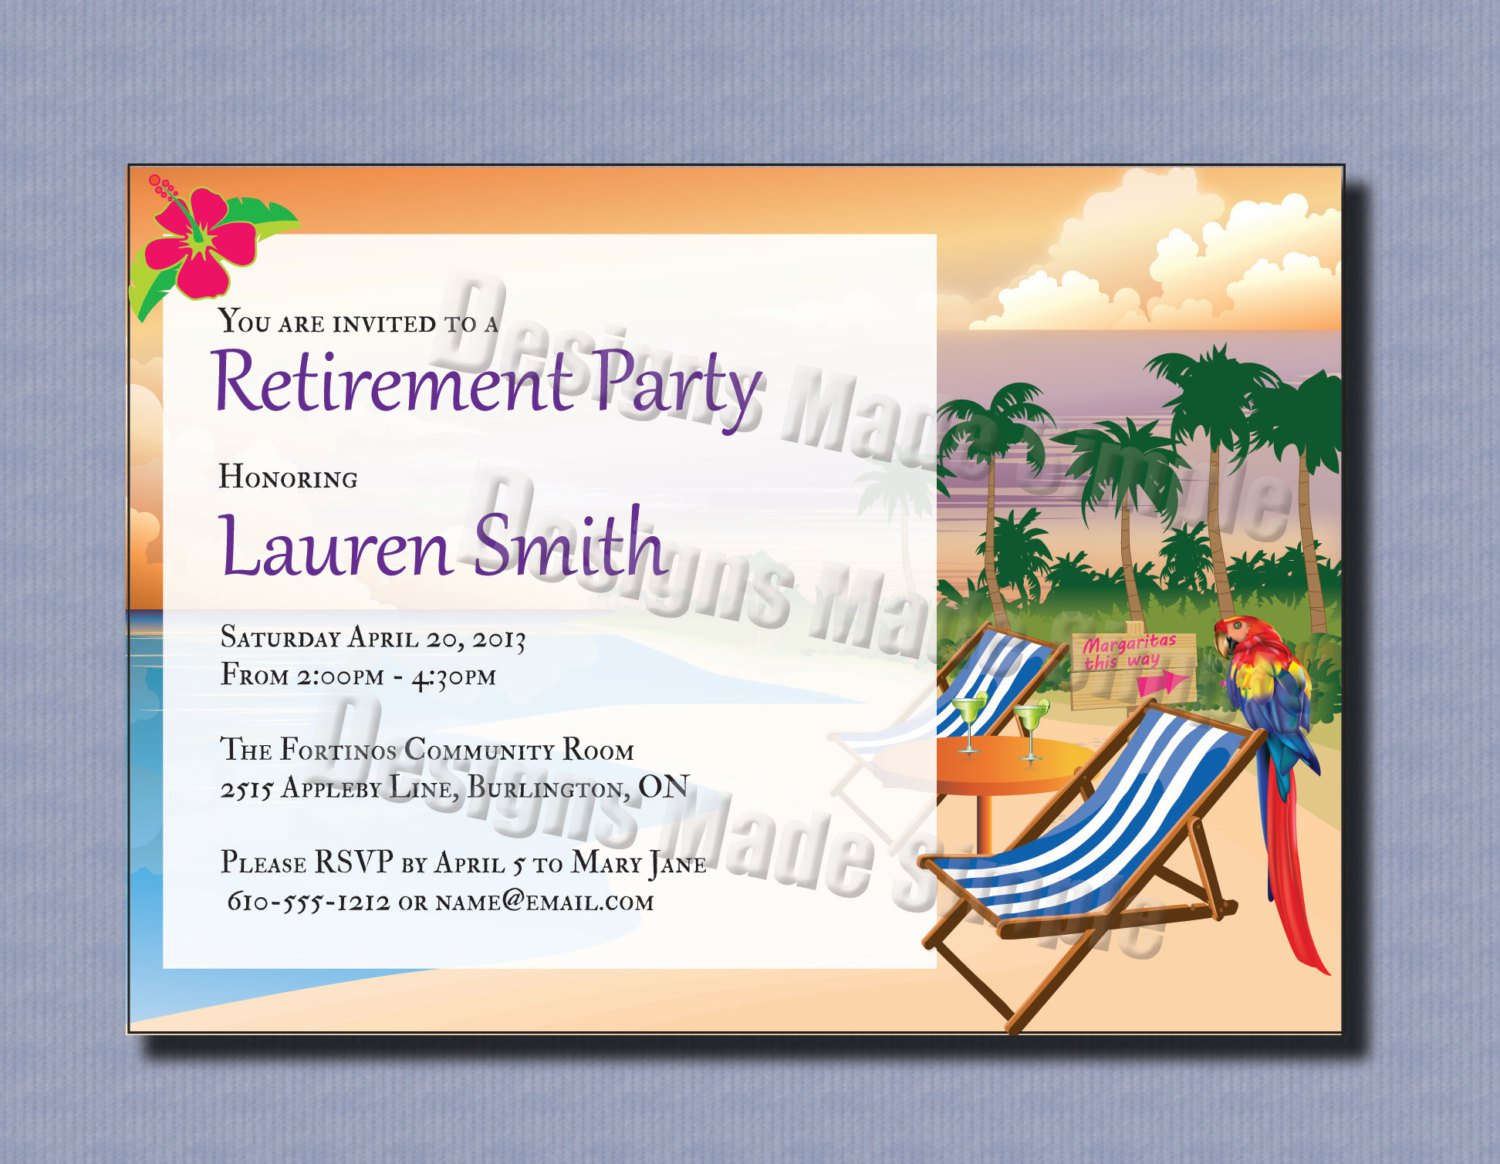 party invitation templates word paralegal resume objective word invitation templates word template christmas party printable retirement party invitations templates word